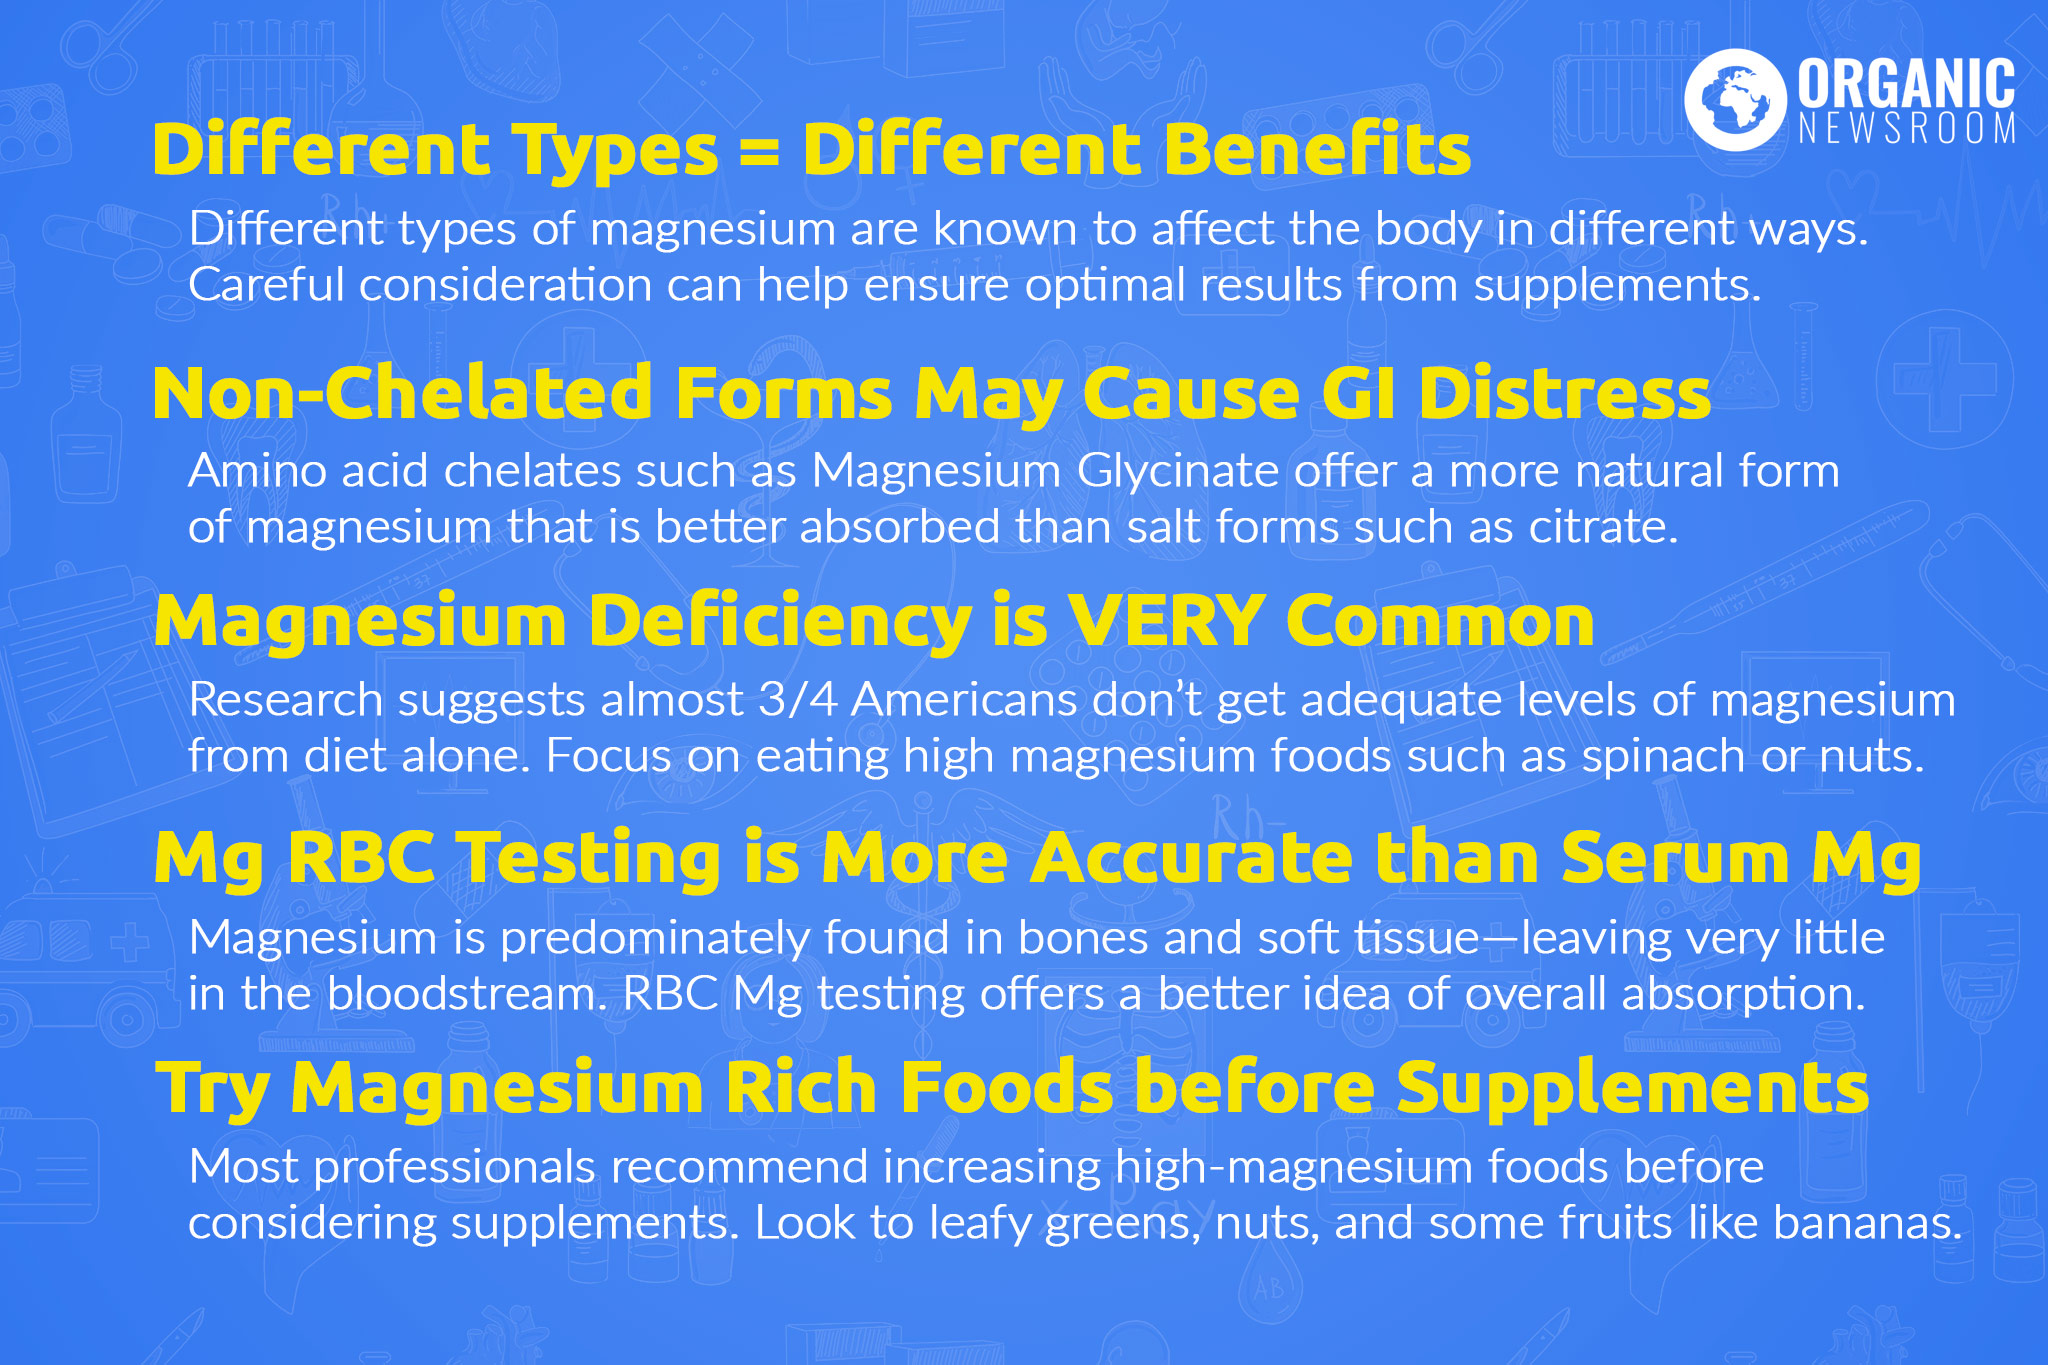 Magnesium Supplement Considerations OrganicNewsroom